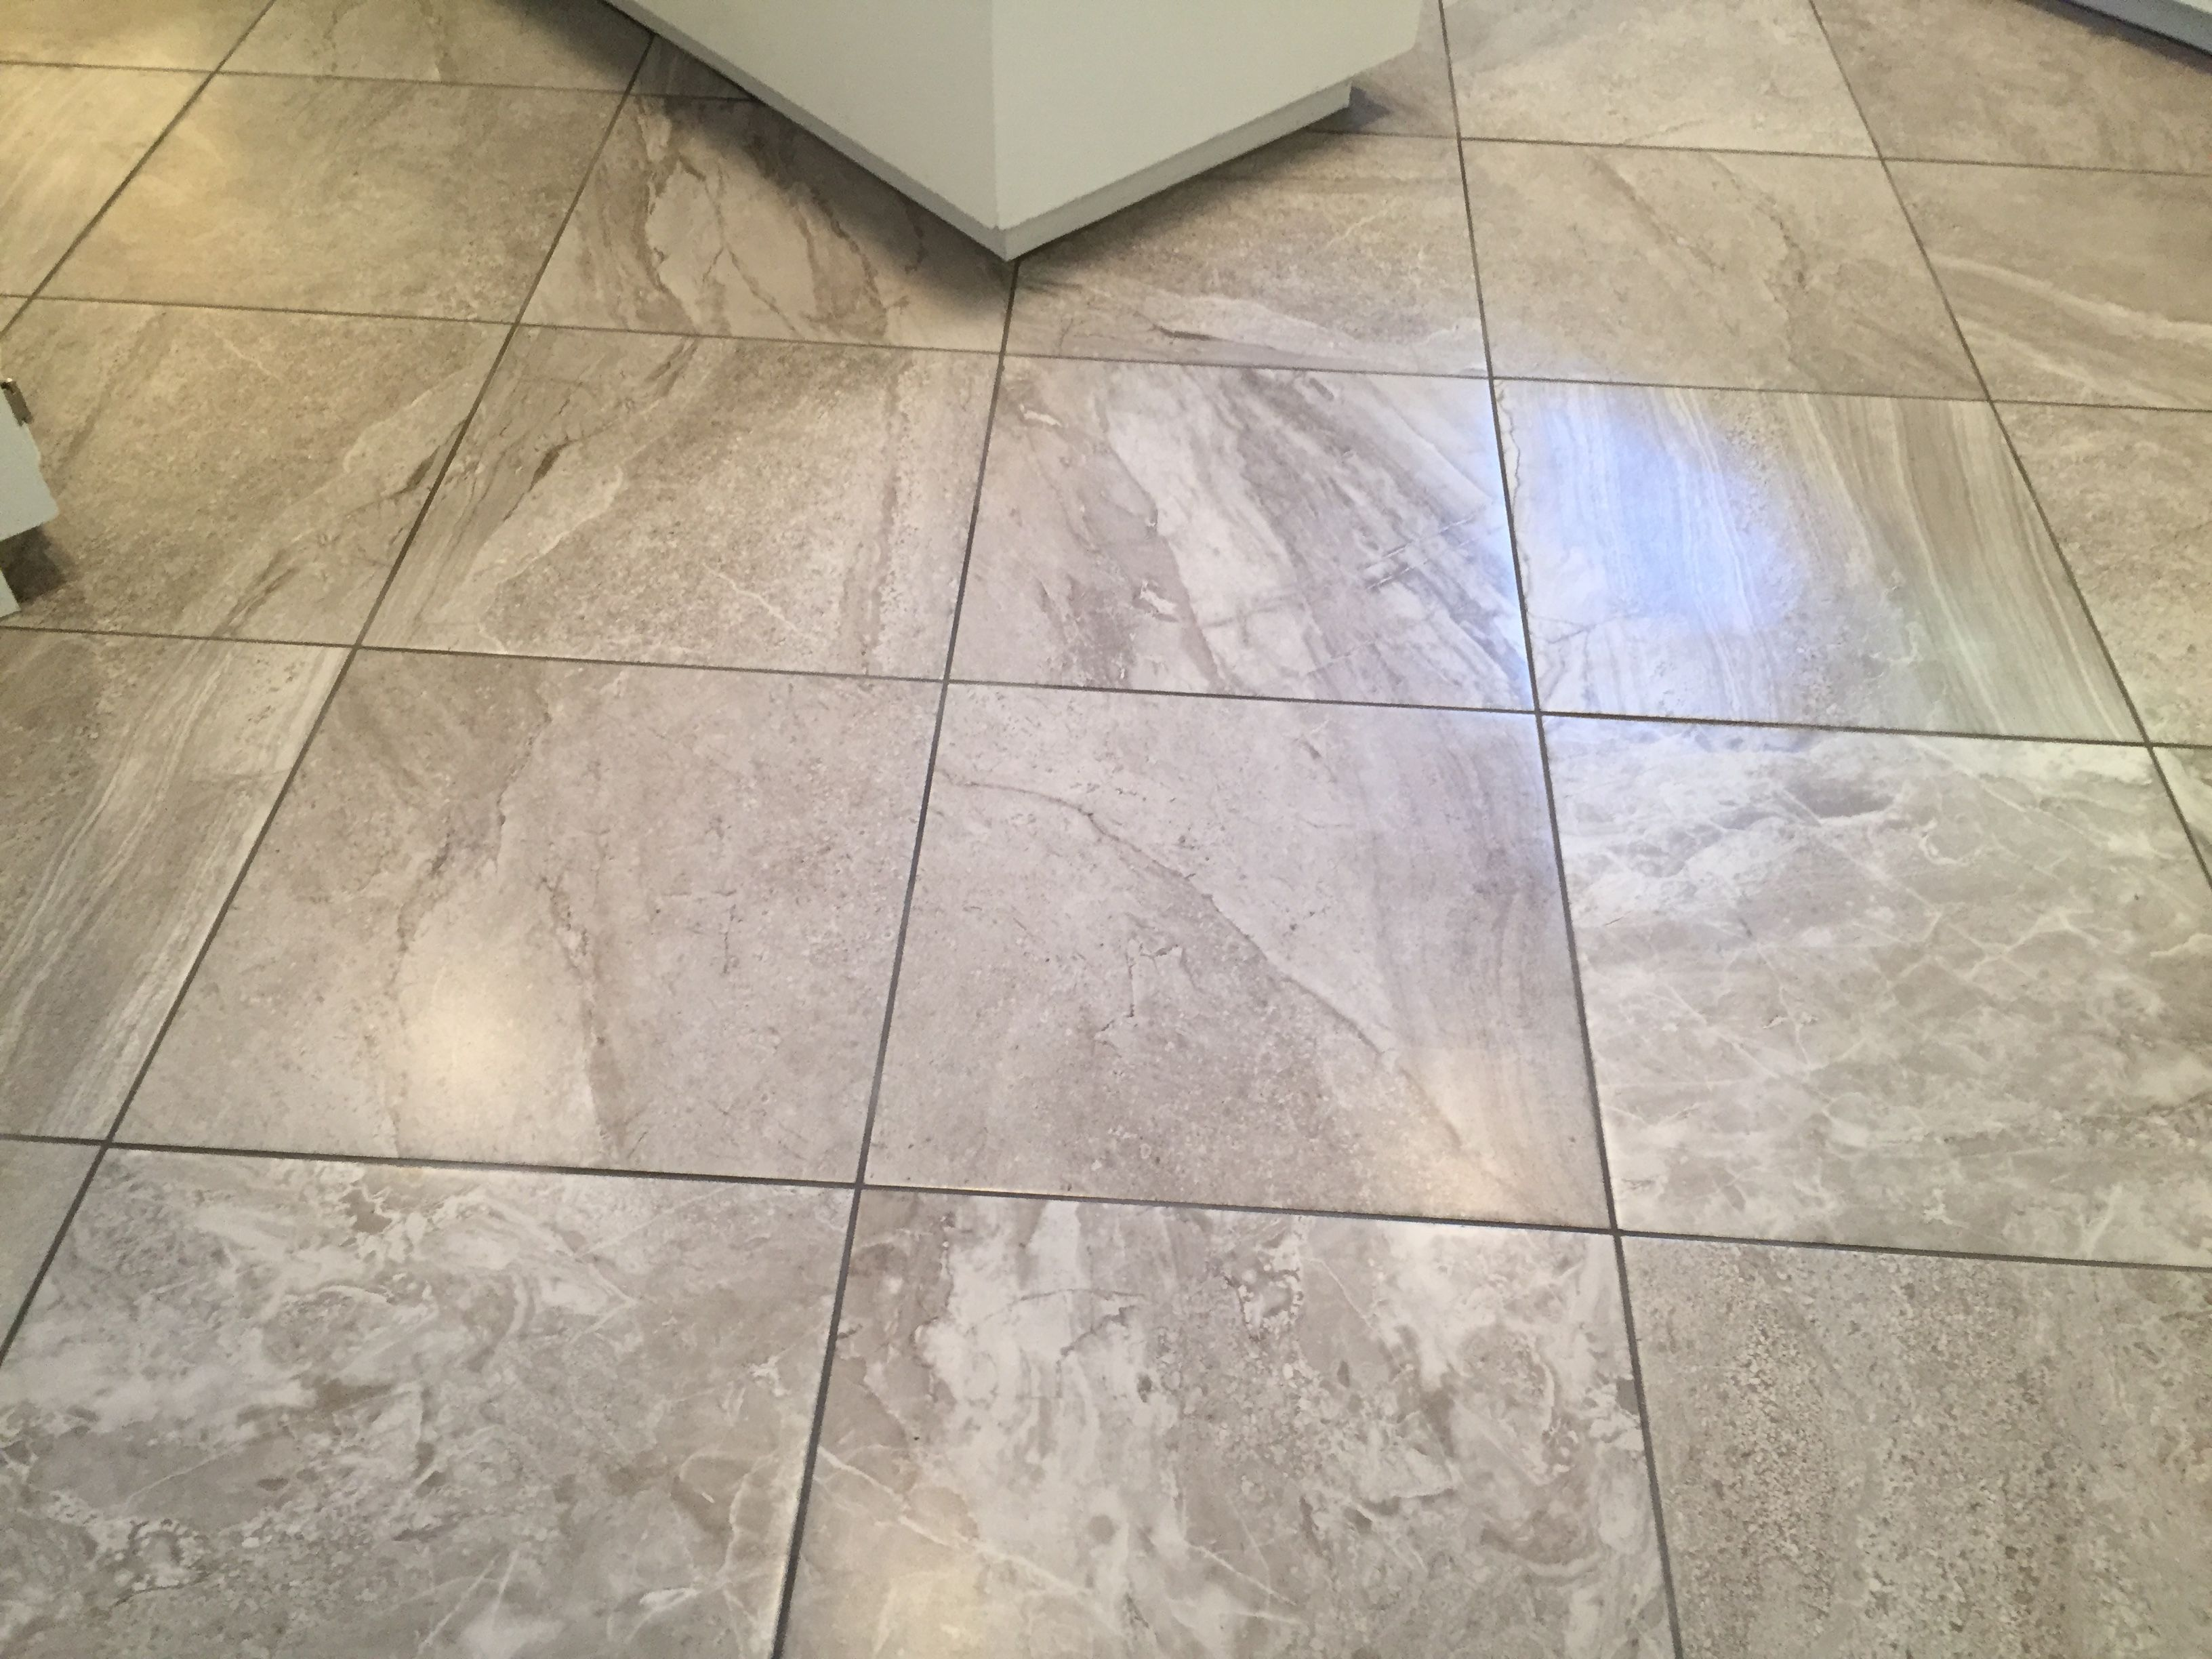 Preferred 20x20 tile laid on the diagonal | Tile and Stone Floors | Pinterest ZF77